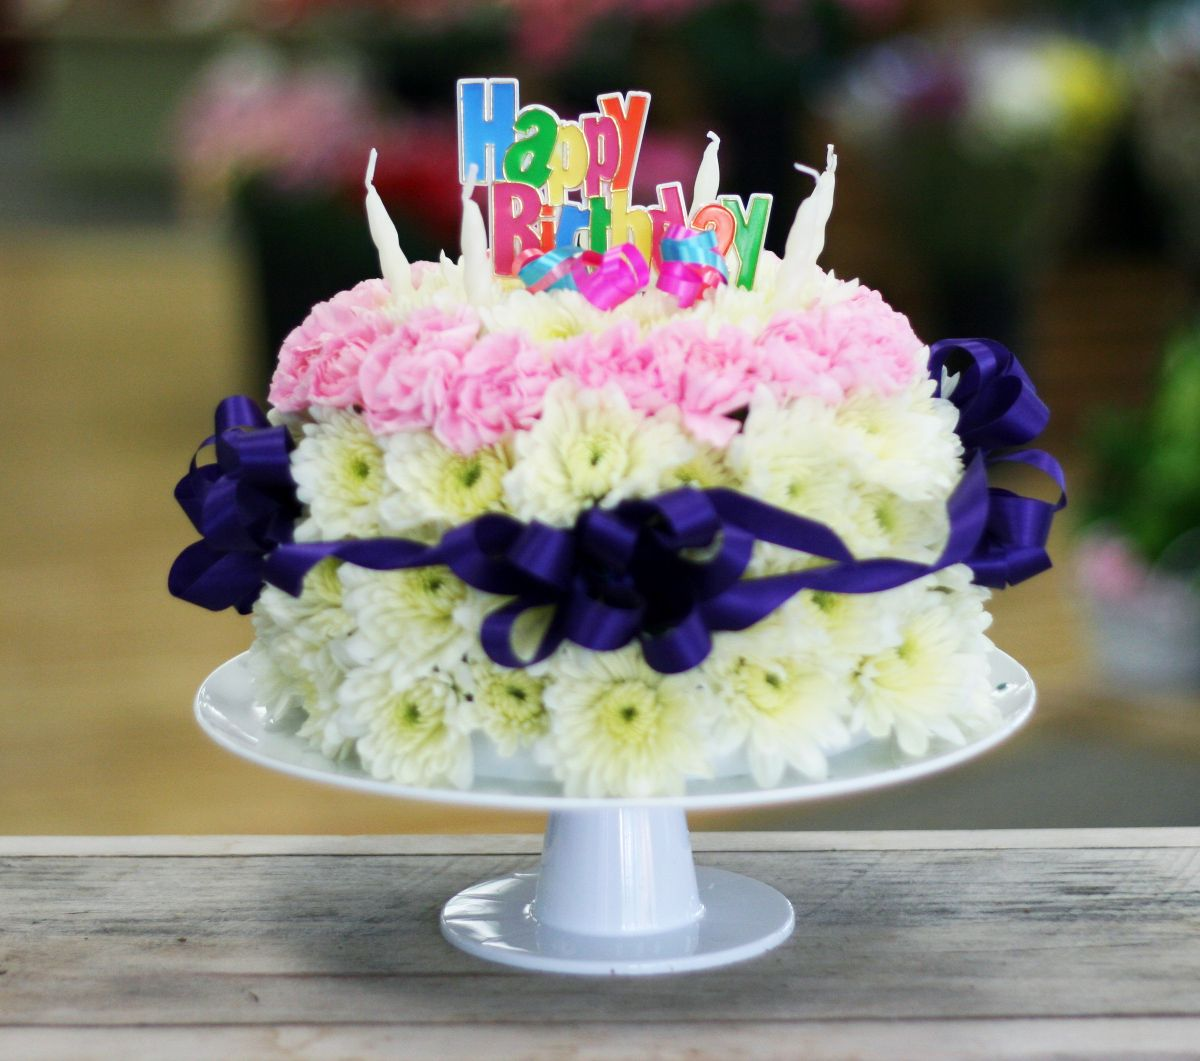 35 Awesome Birthday Flowers And Cake Images